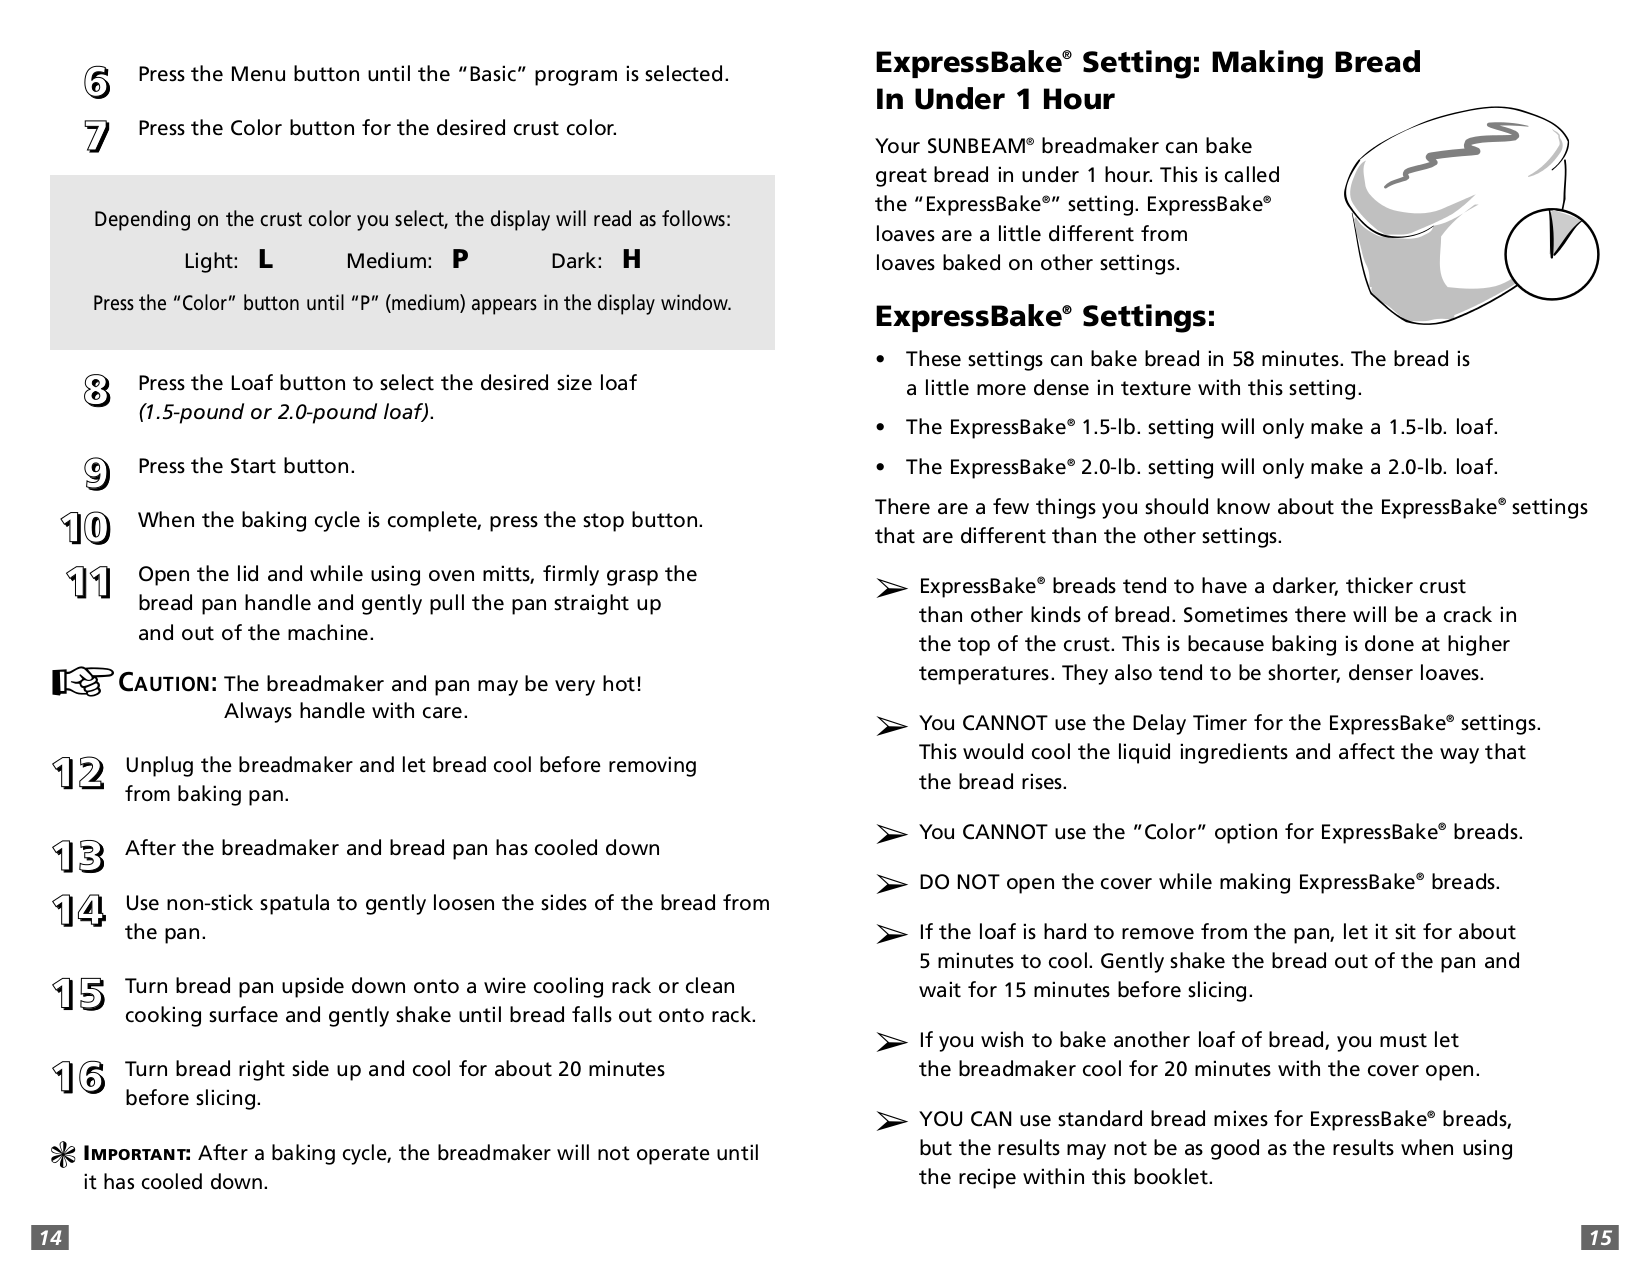 pdf manual for sunbeam bread maker 5891 rh umlib com sunbeam bread maker model 5891 manual sunbeam bread maker model 5891 manual